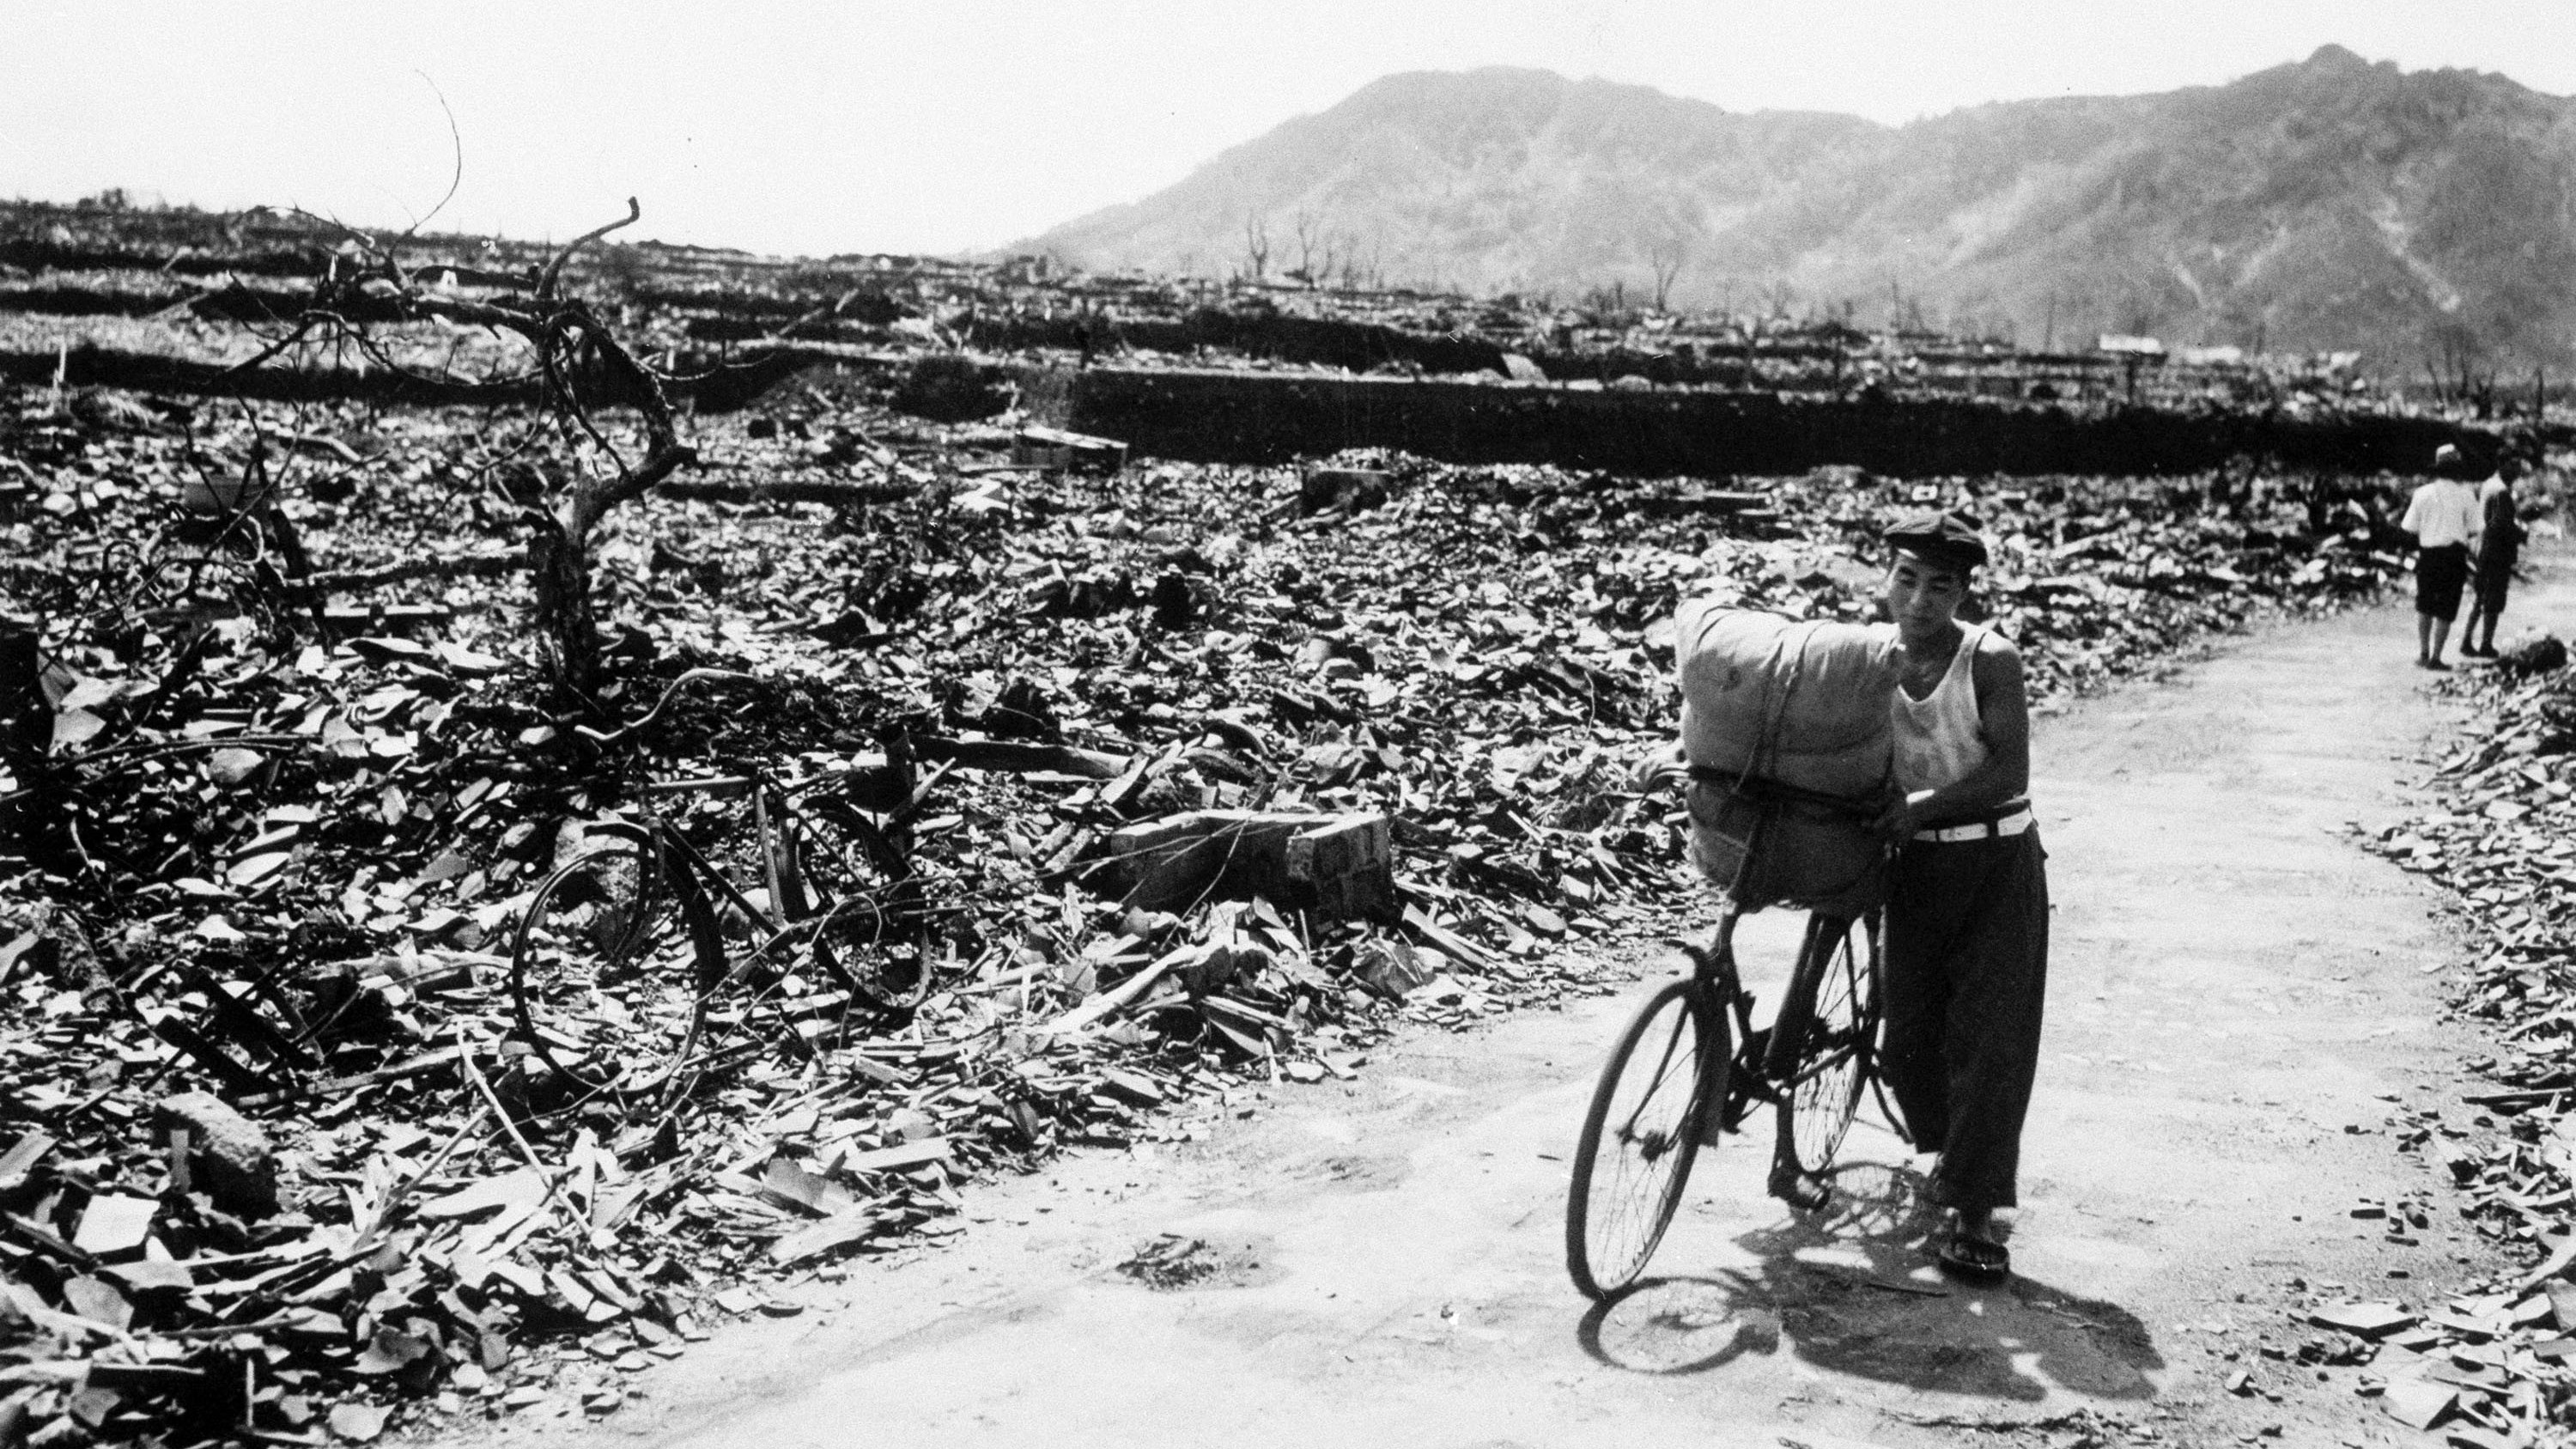 A man pushes a loaded bicycle down a cleared path in a flattened area of Nagasaki more than a month after the nuclear attack in 1945.